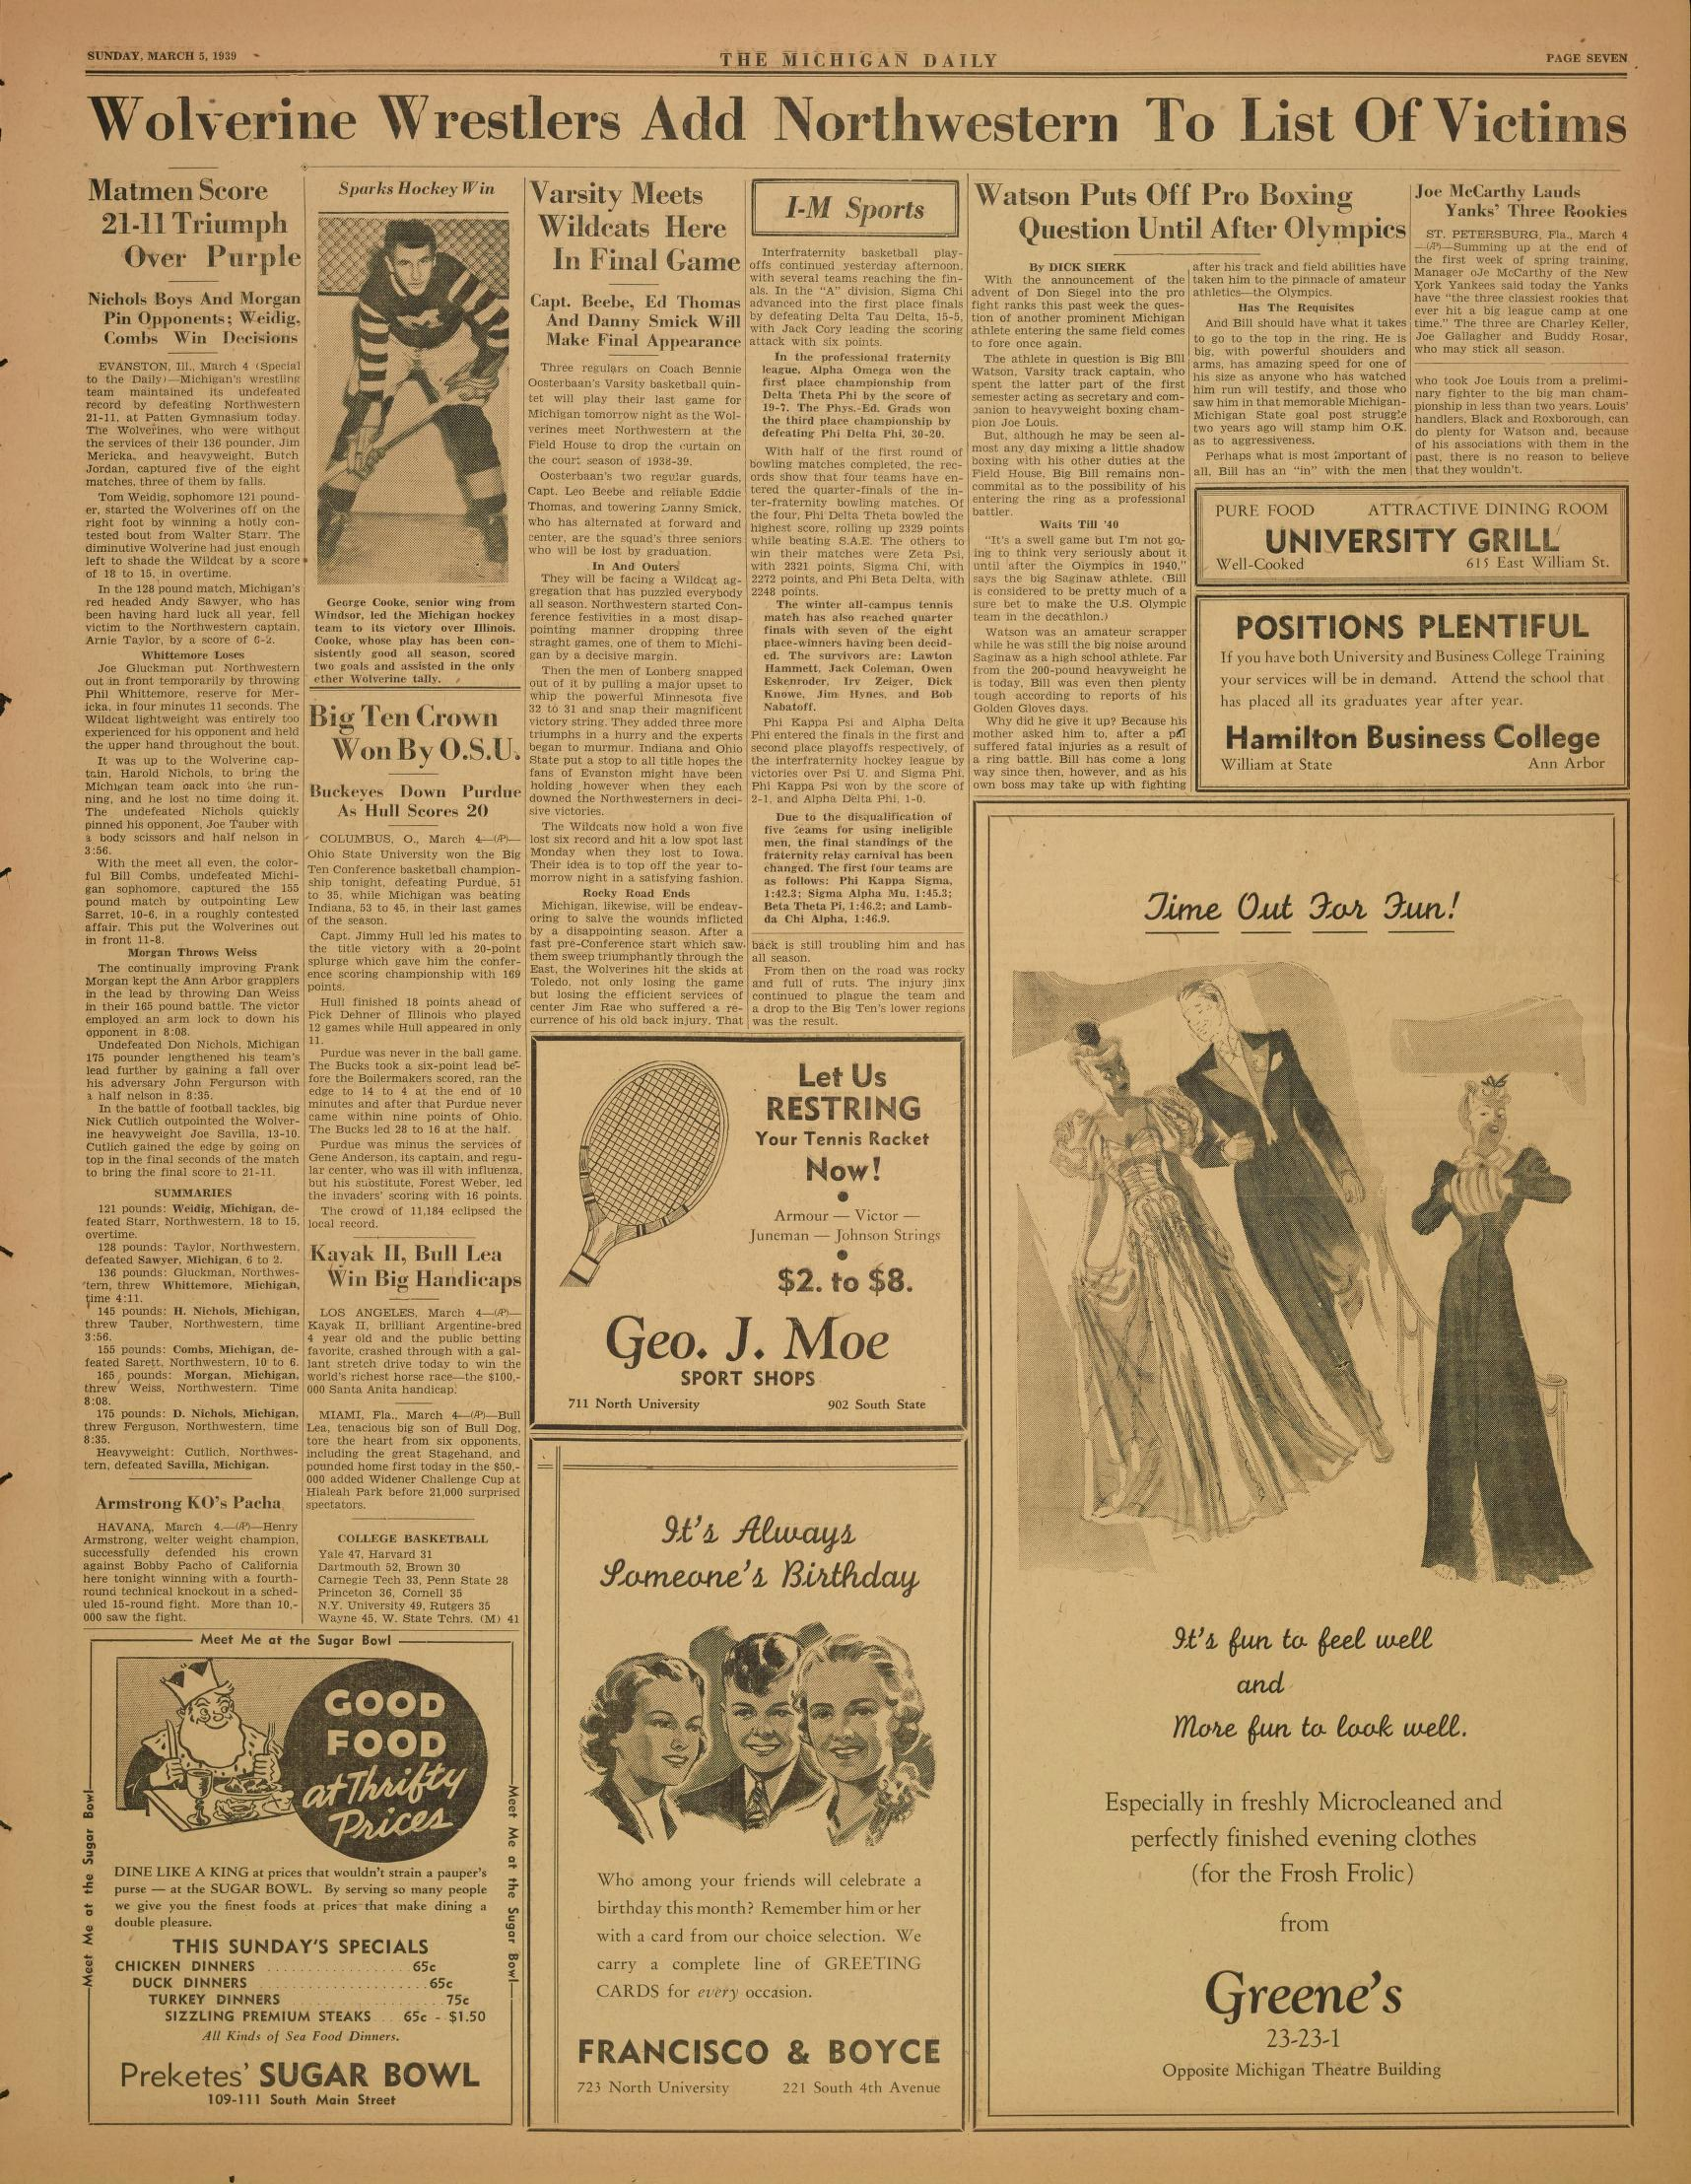 Michigan Daily Digital Archives March 05 1939 vol 49 iss 110